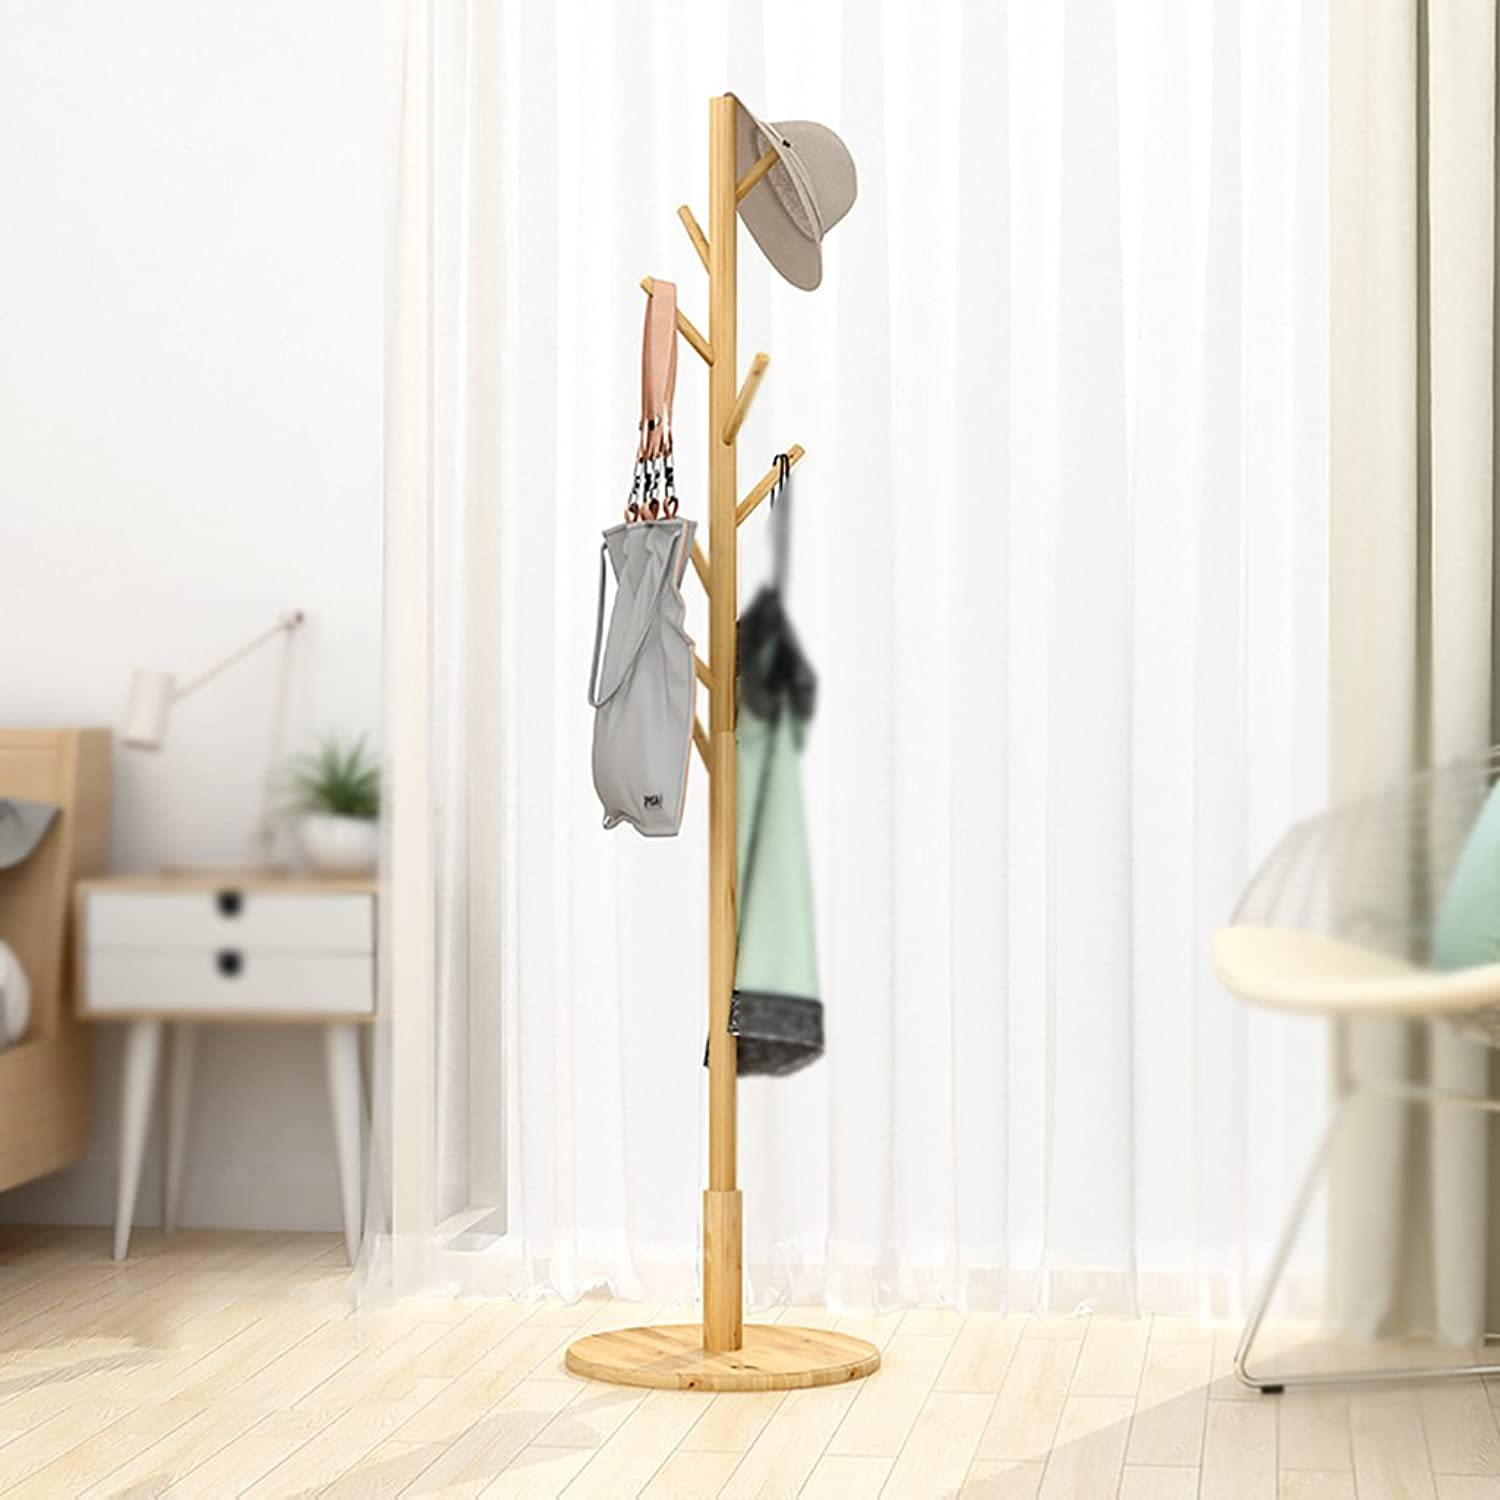 JPYMJ Wooden Coat Stand 8 Hooks Hat and Coat Rack Free Standing Tree Clothes Rail Hanging Storage Organiser for Entryway Hallway Bedroom Closet Wardrobe 161 cm (color   C)